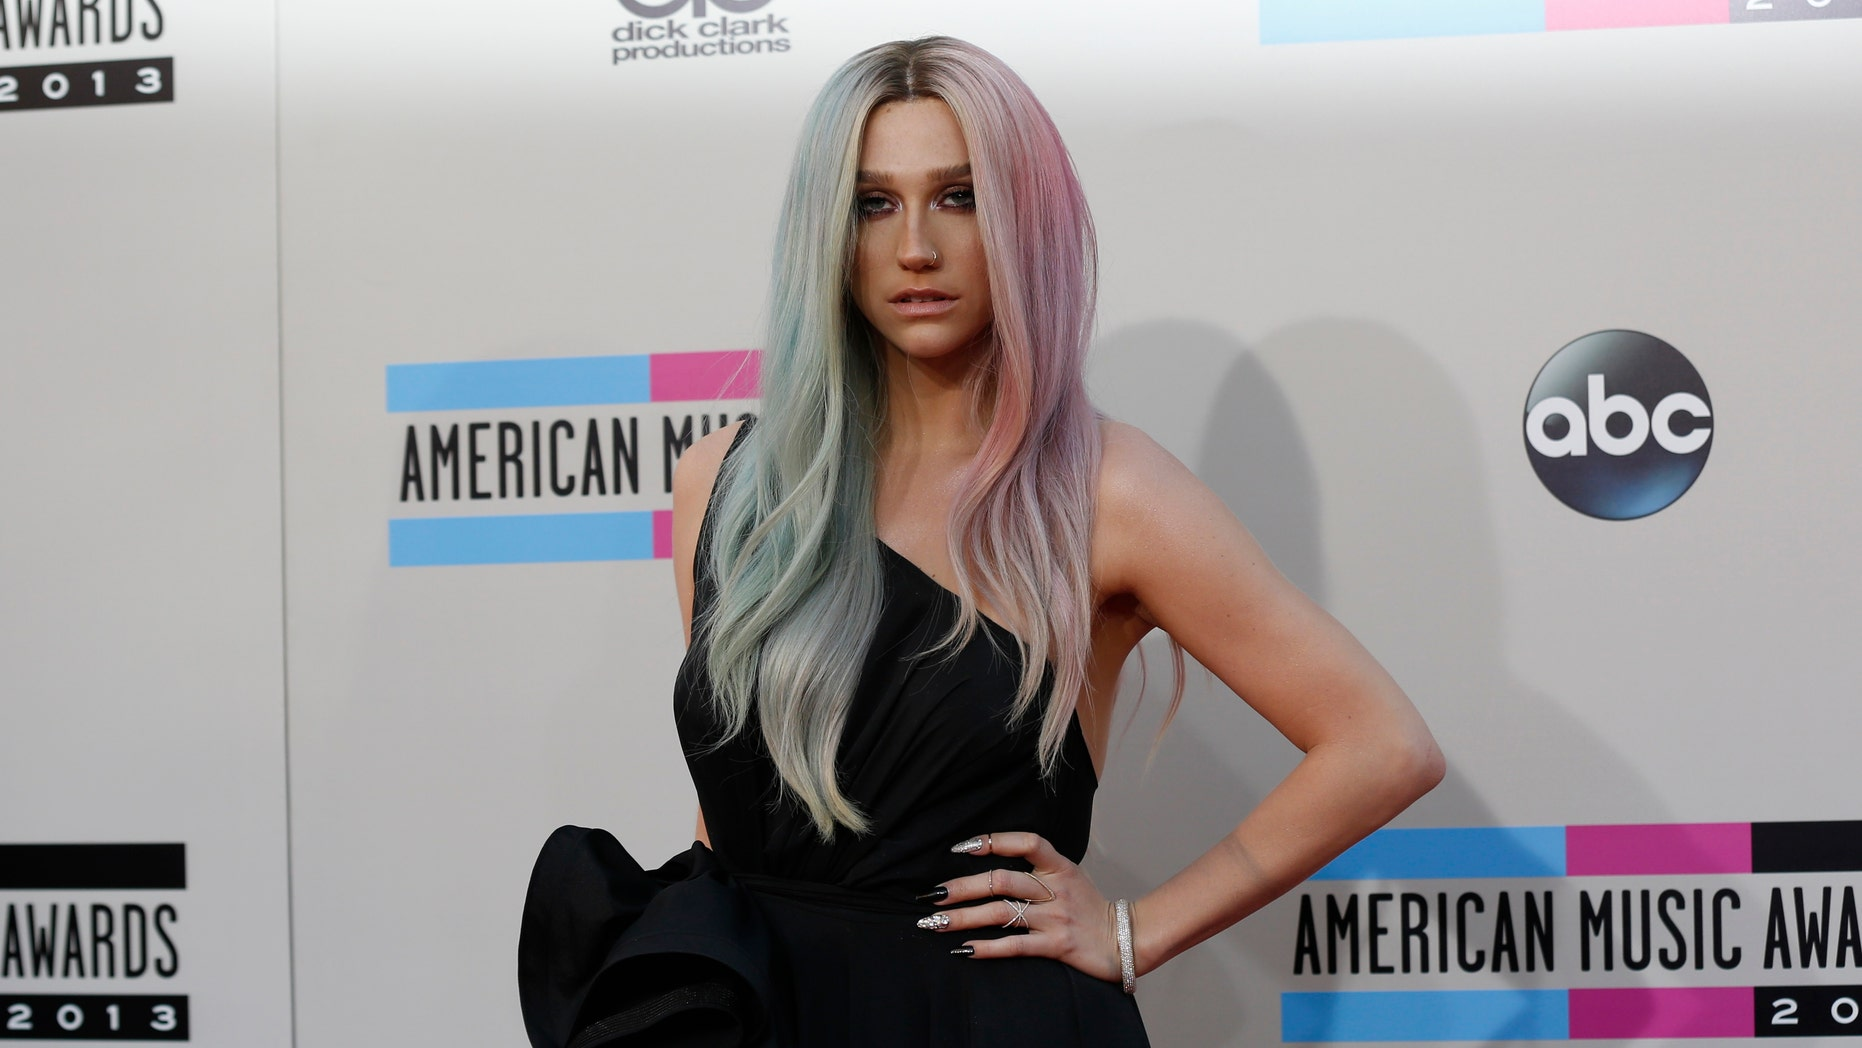 November 24, 2013. Ke$ha arrives at the 41st American Music Awards in Los Angeles, California.